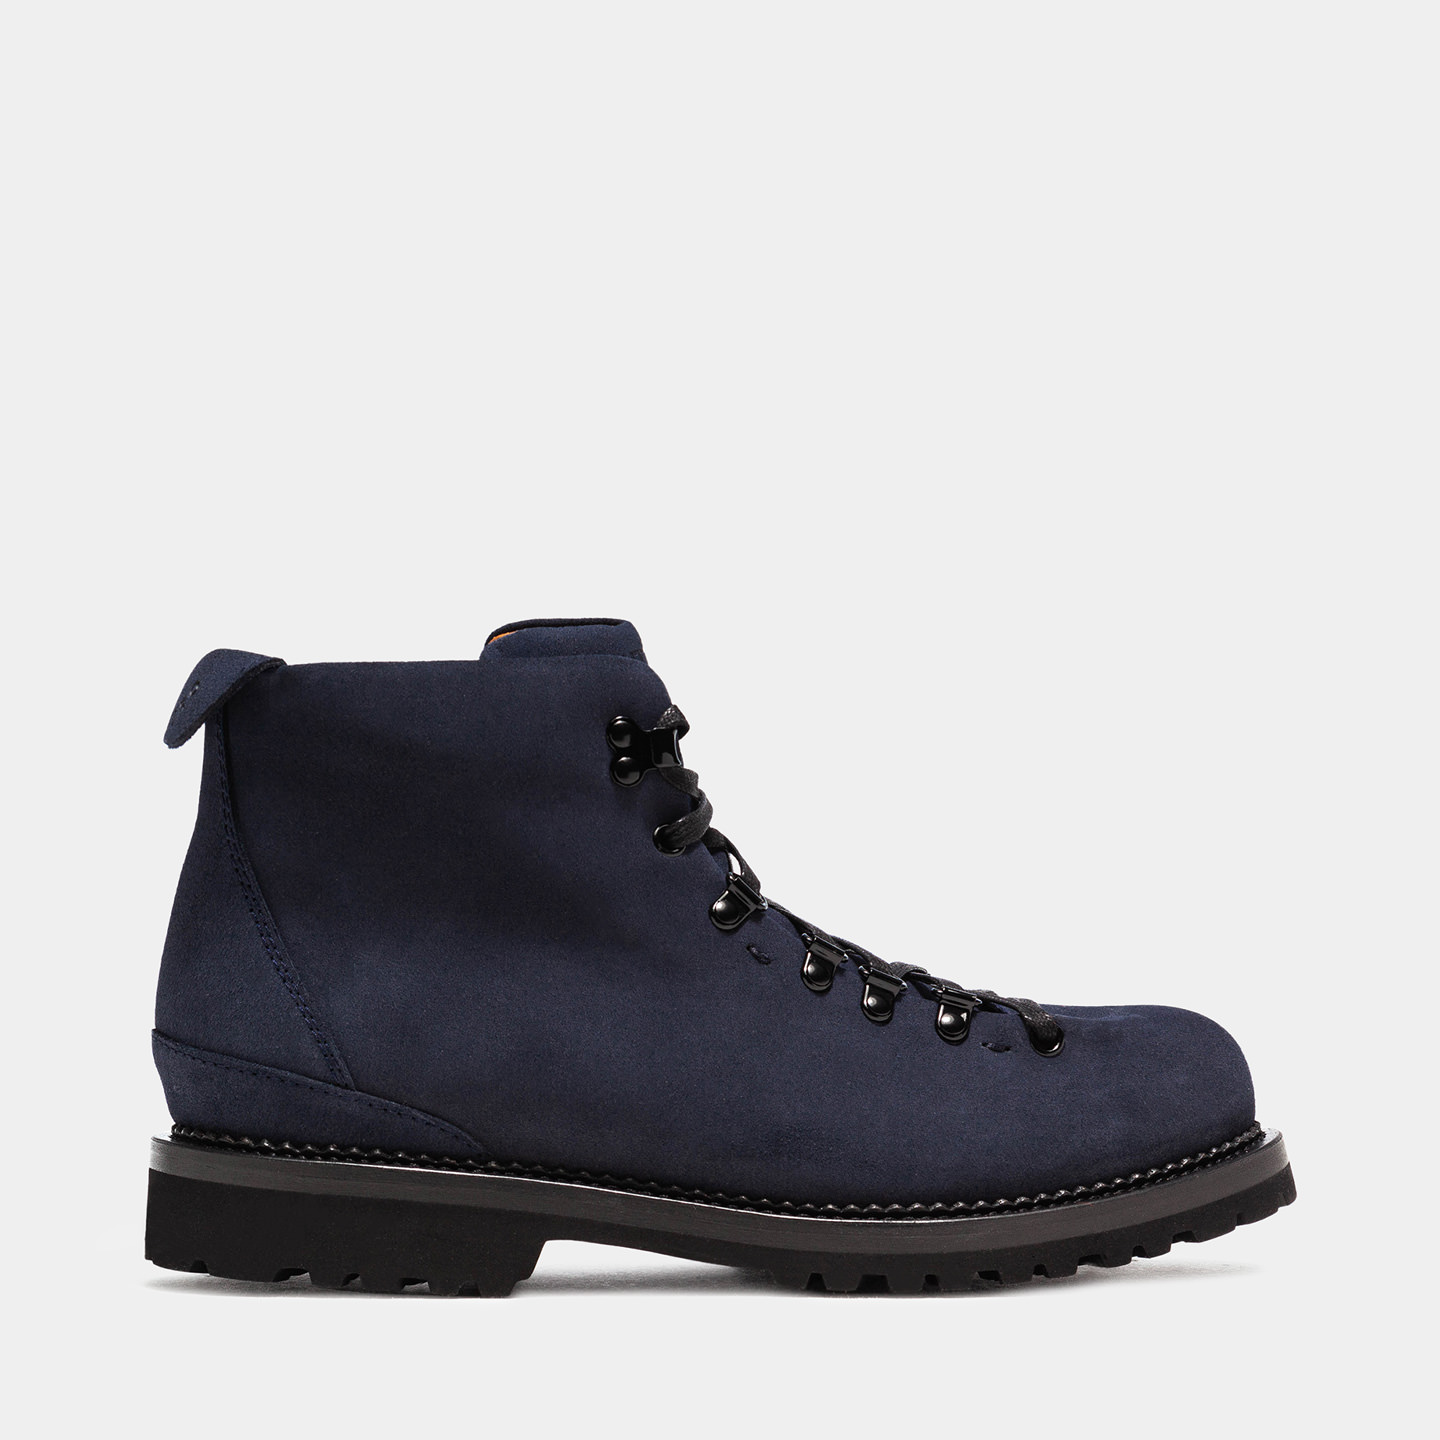 BUTTERO: CANALONE HIKING BOOTS IN BLUE SUEDE